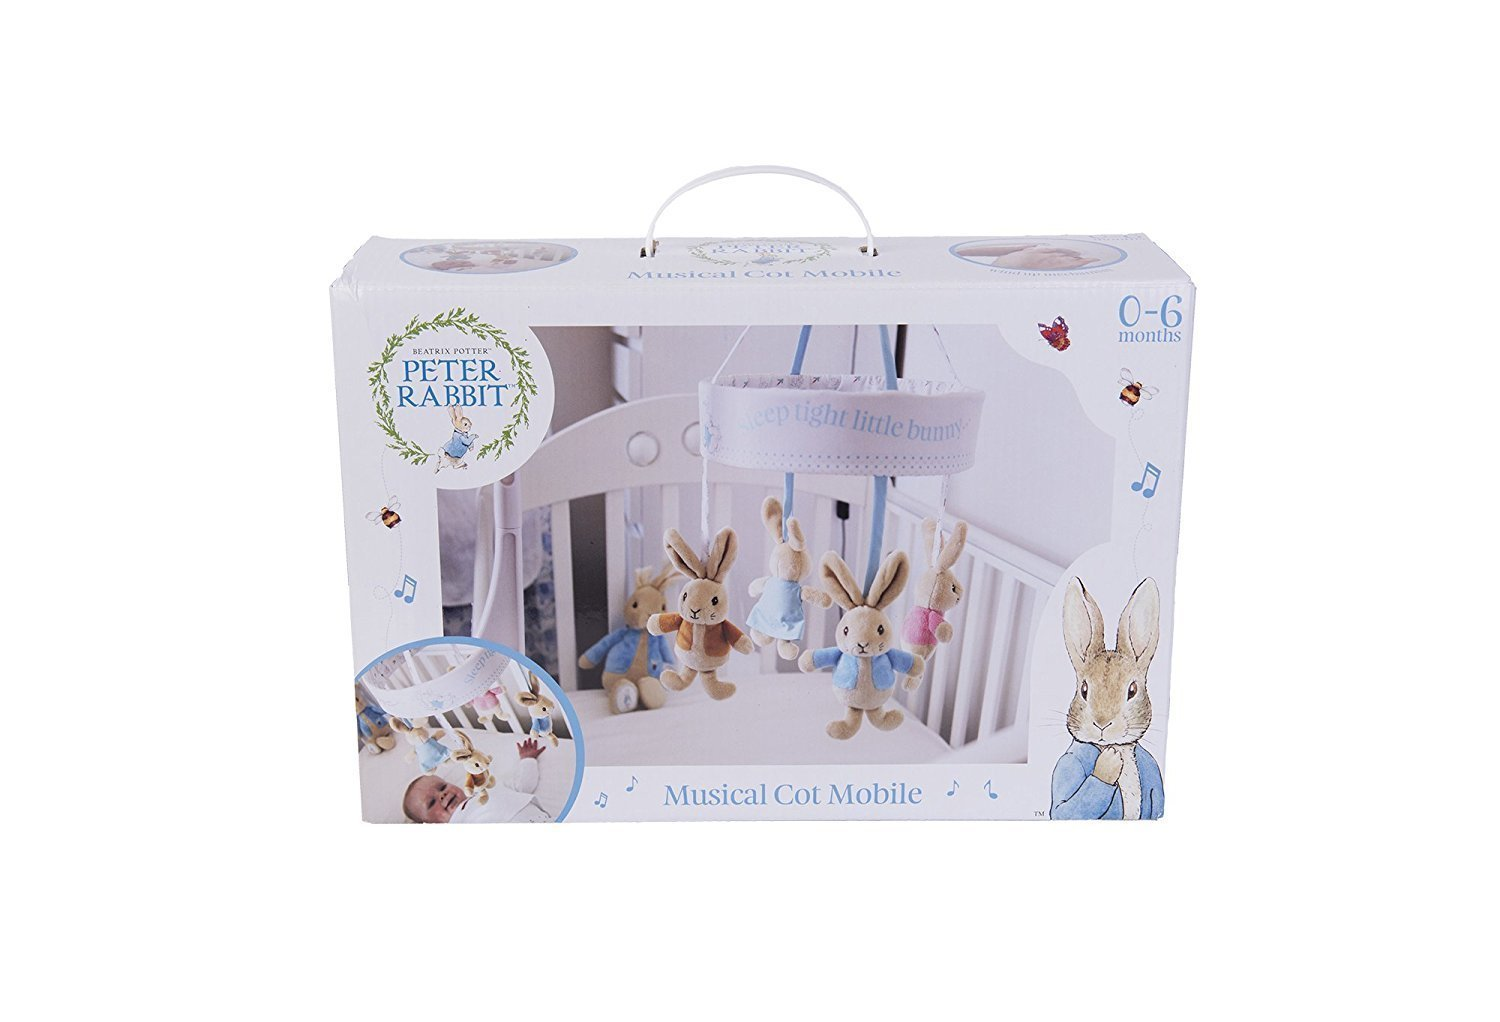 Peter Rabbit Musical Cot Mobile by Beatrix Potter